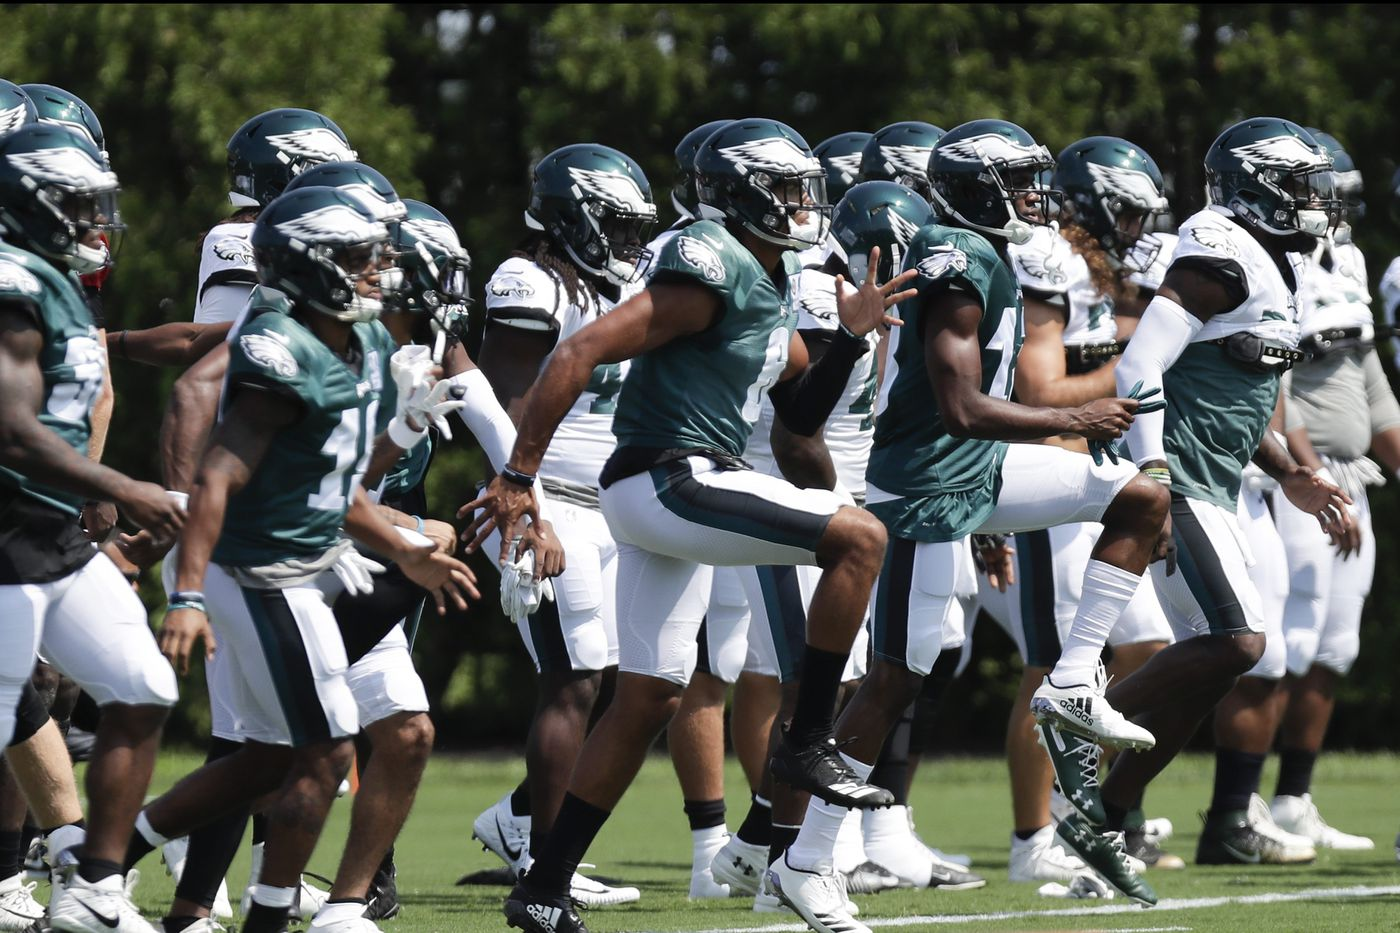 Eagles chat replay: Zach Berman talks roster decisions, Joe Douglas and more